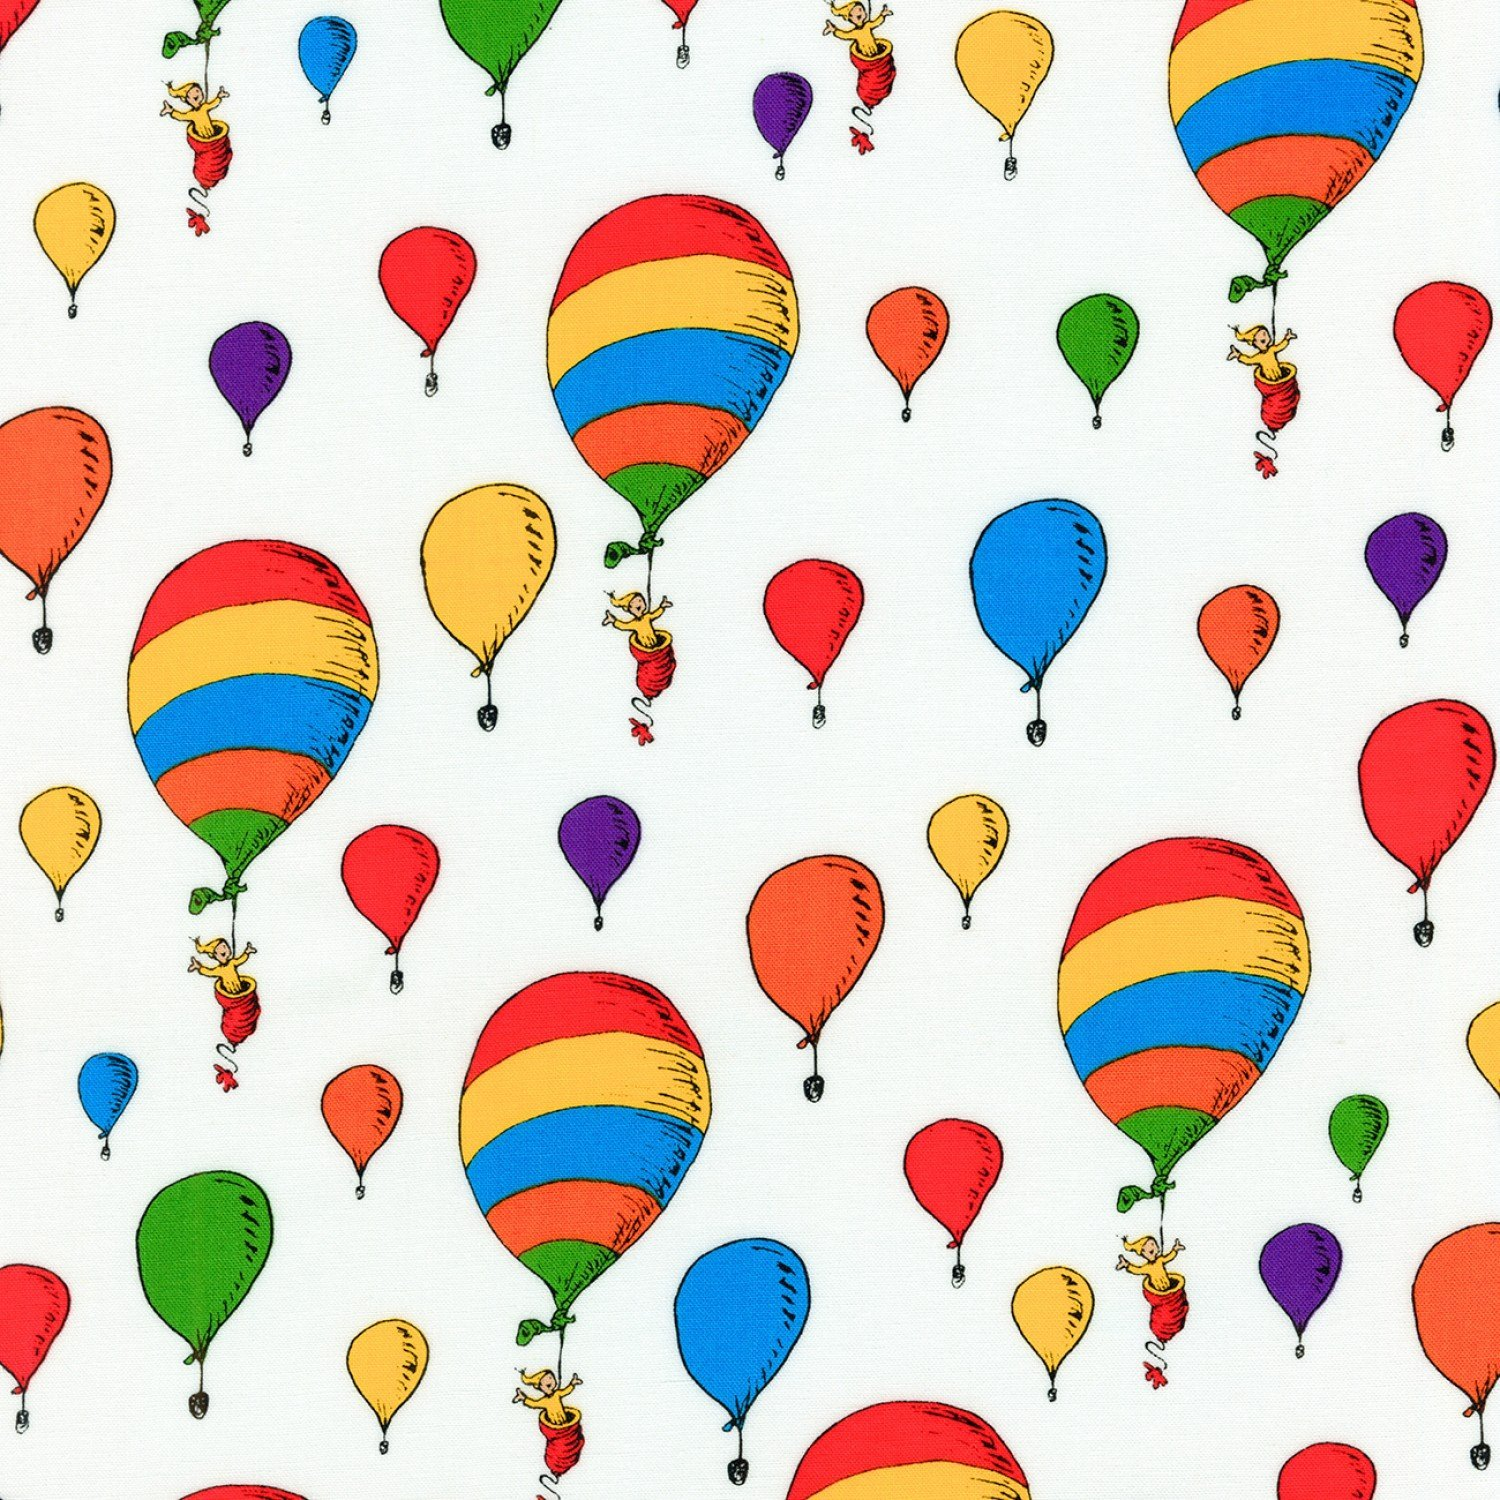 OH THE PLACES YOU'LL GO BALLOONS- DR SUESS